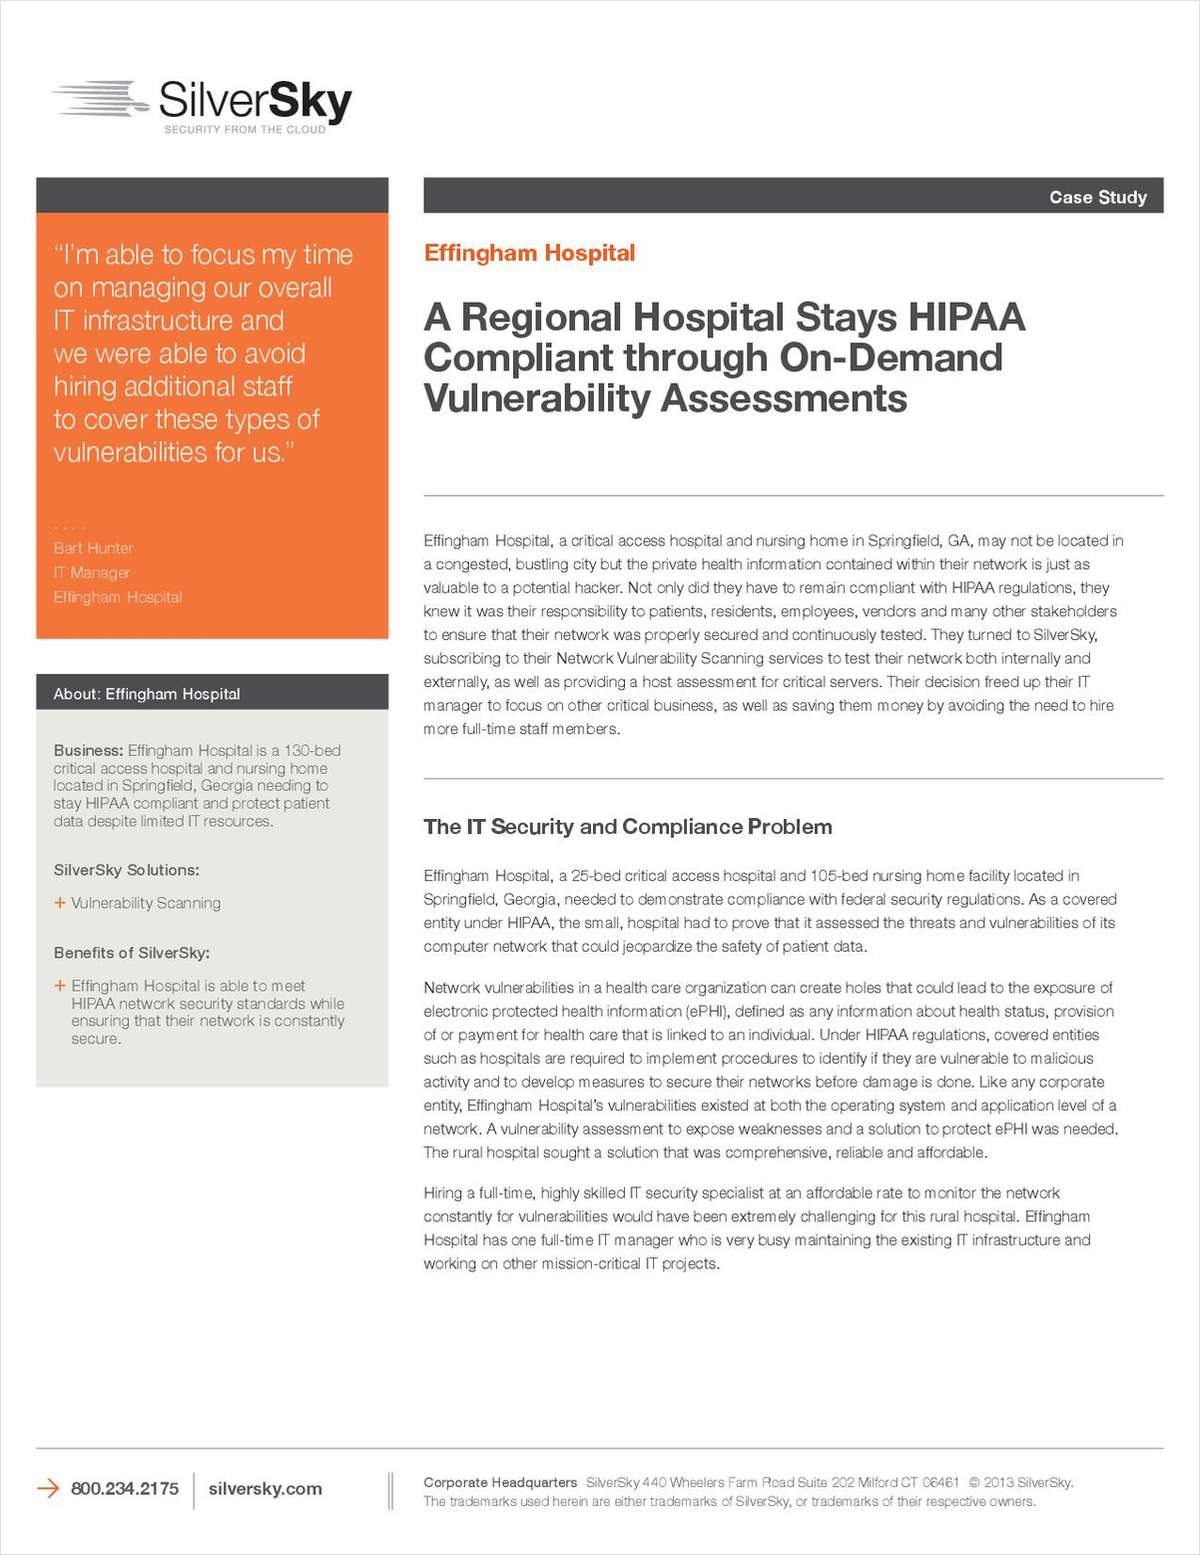 A Regional Hospital Stays HIPAA Compliant through On-Demand Vulnerability Assessments